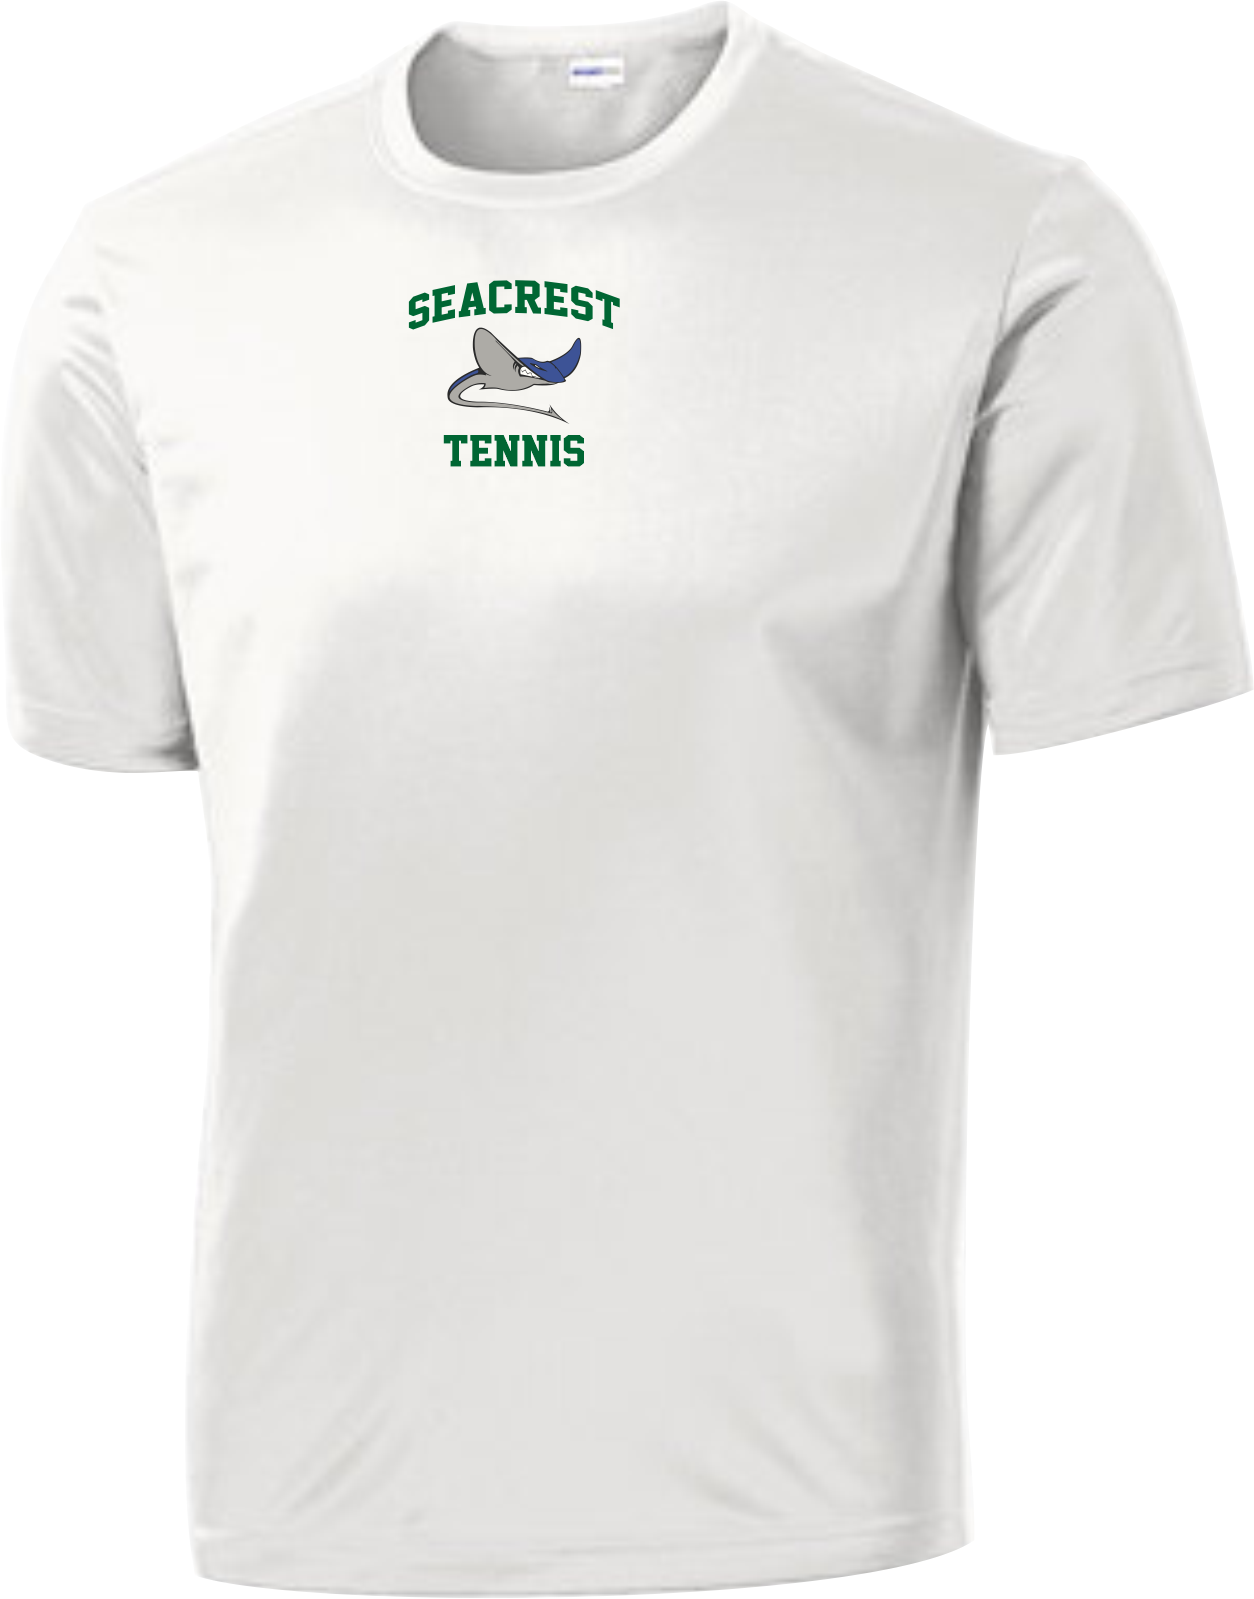 Seacrest Tennis Youth T shirt